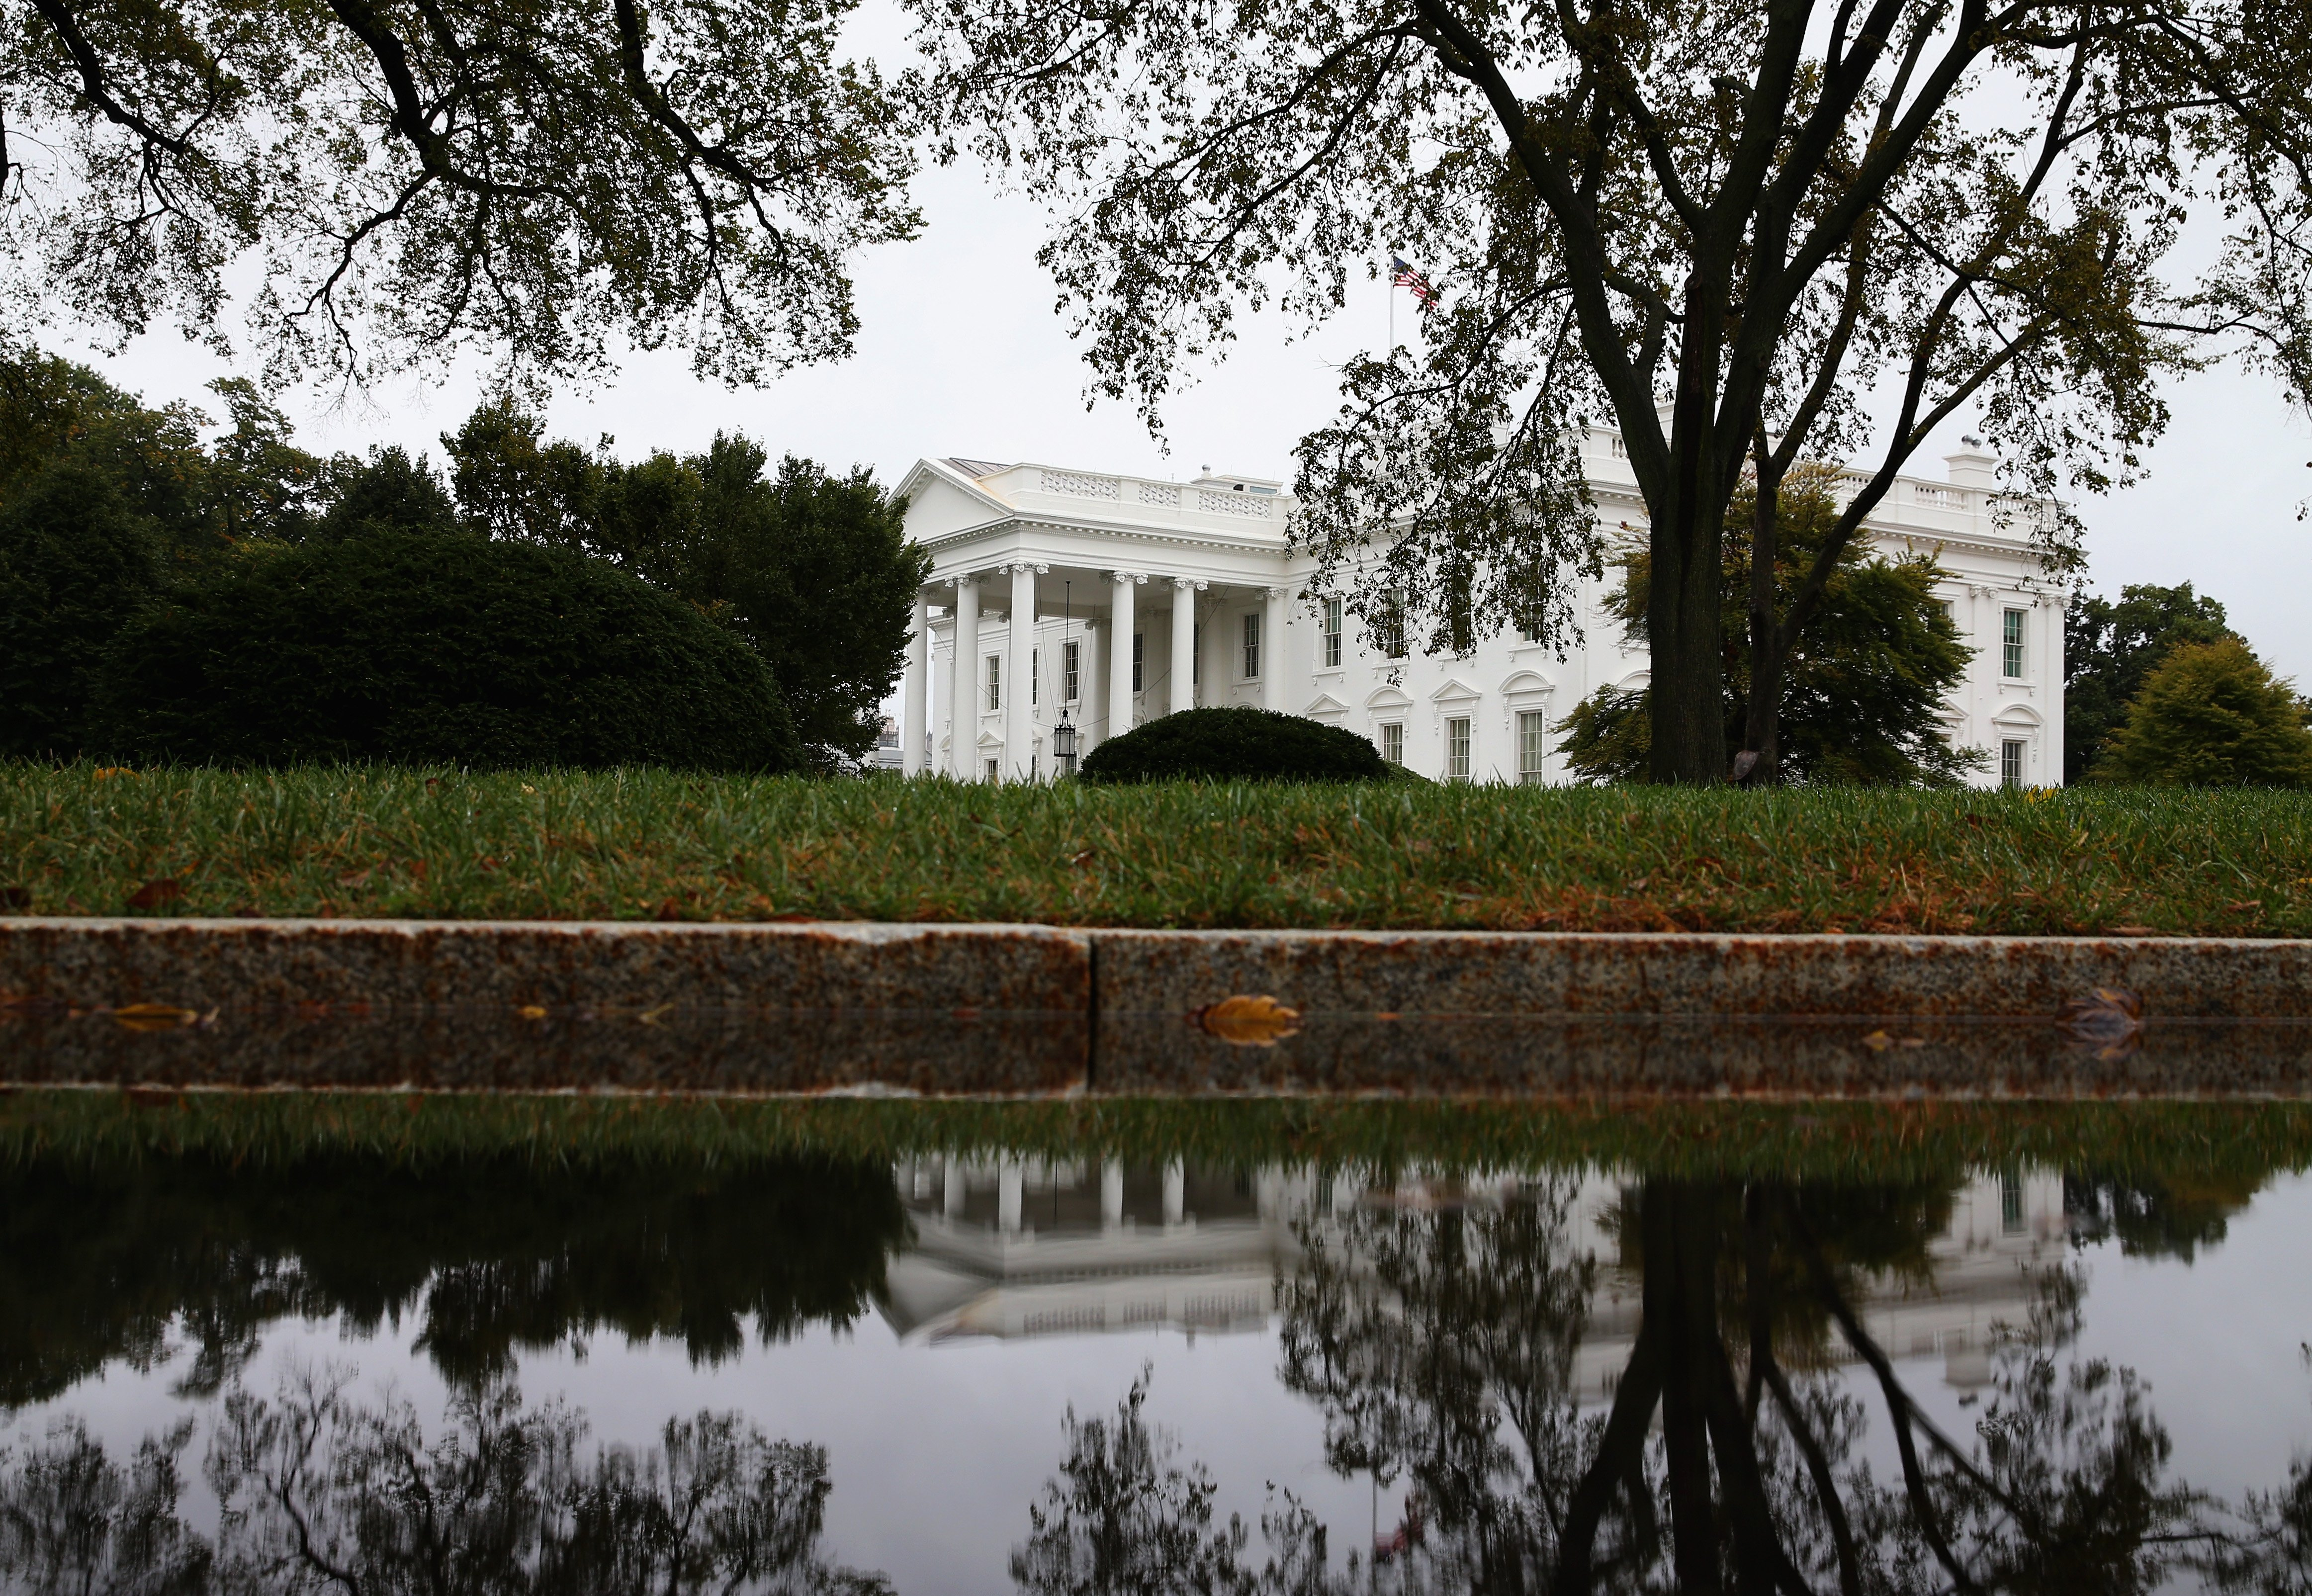 A puddle in the driveway reflects the White House and north lawn on Sept. 25, 2014 in Washington, DC.